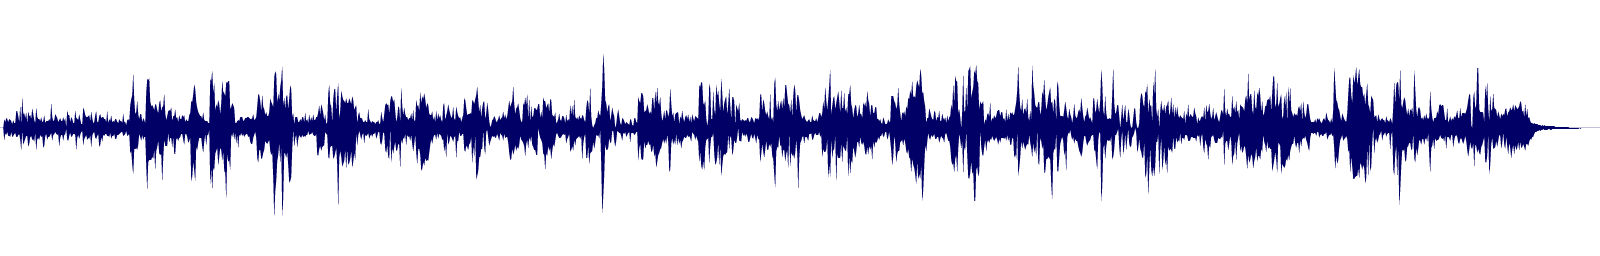 waveform of track #145129